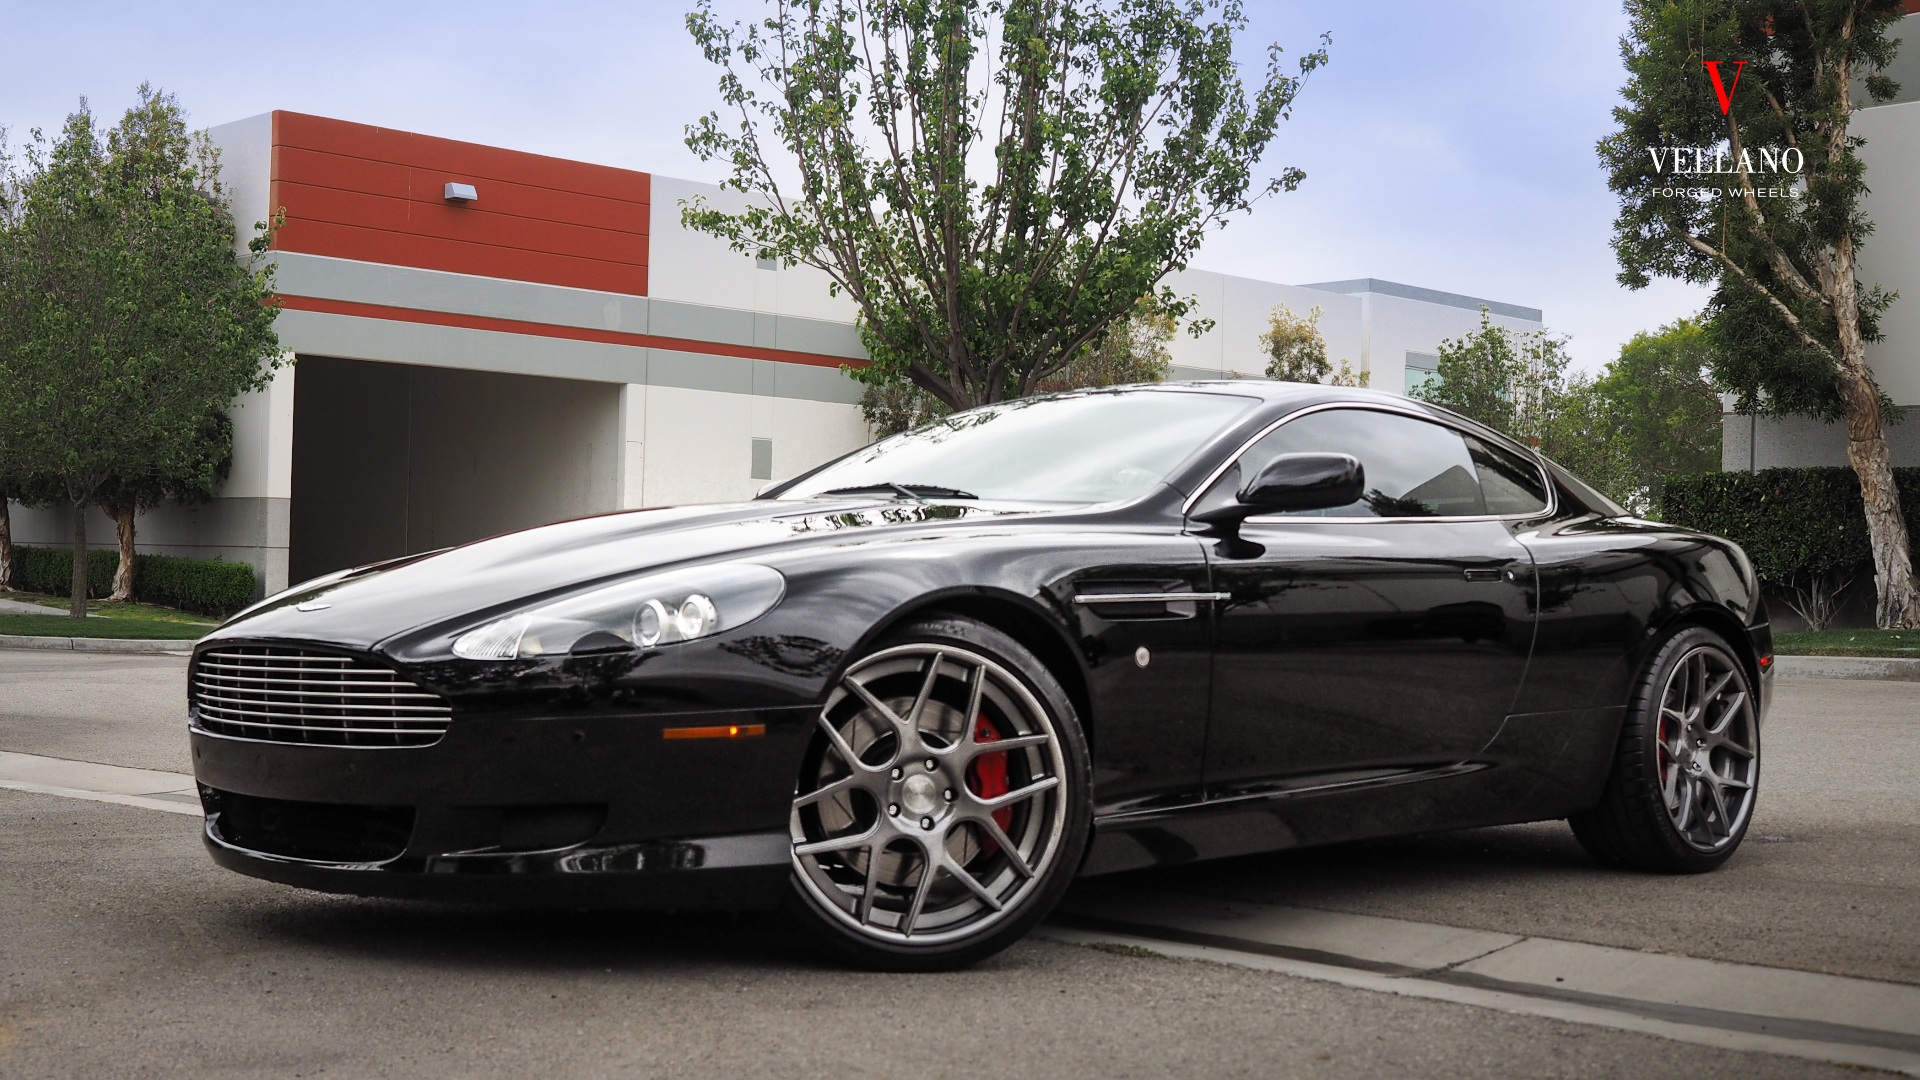 ASTON MARTIN ON VCK CONCAVE